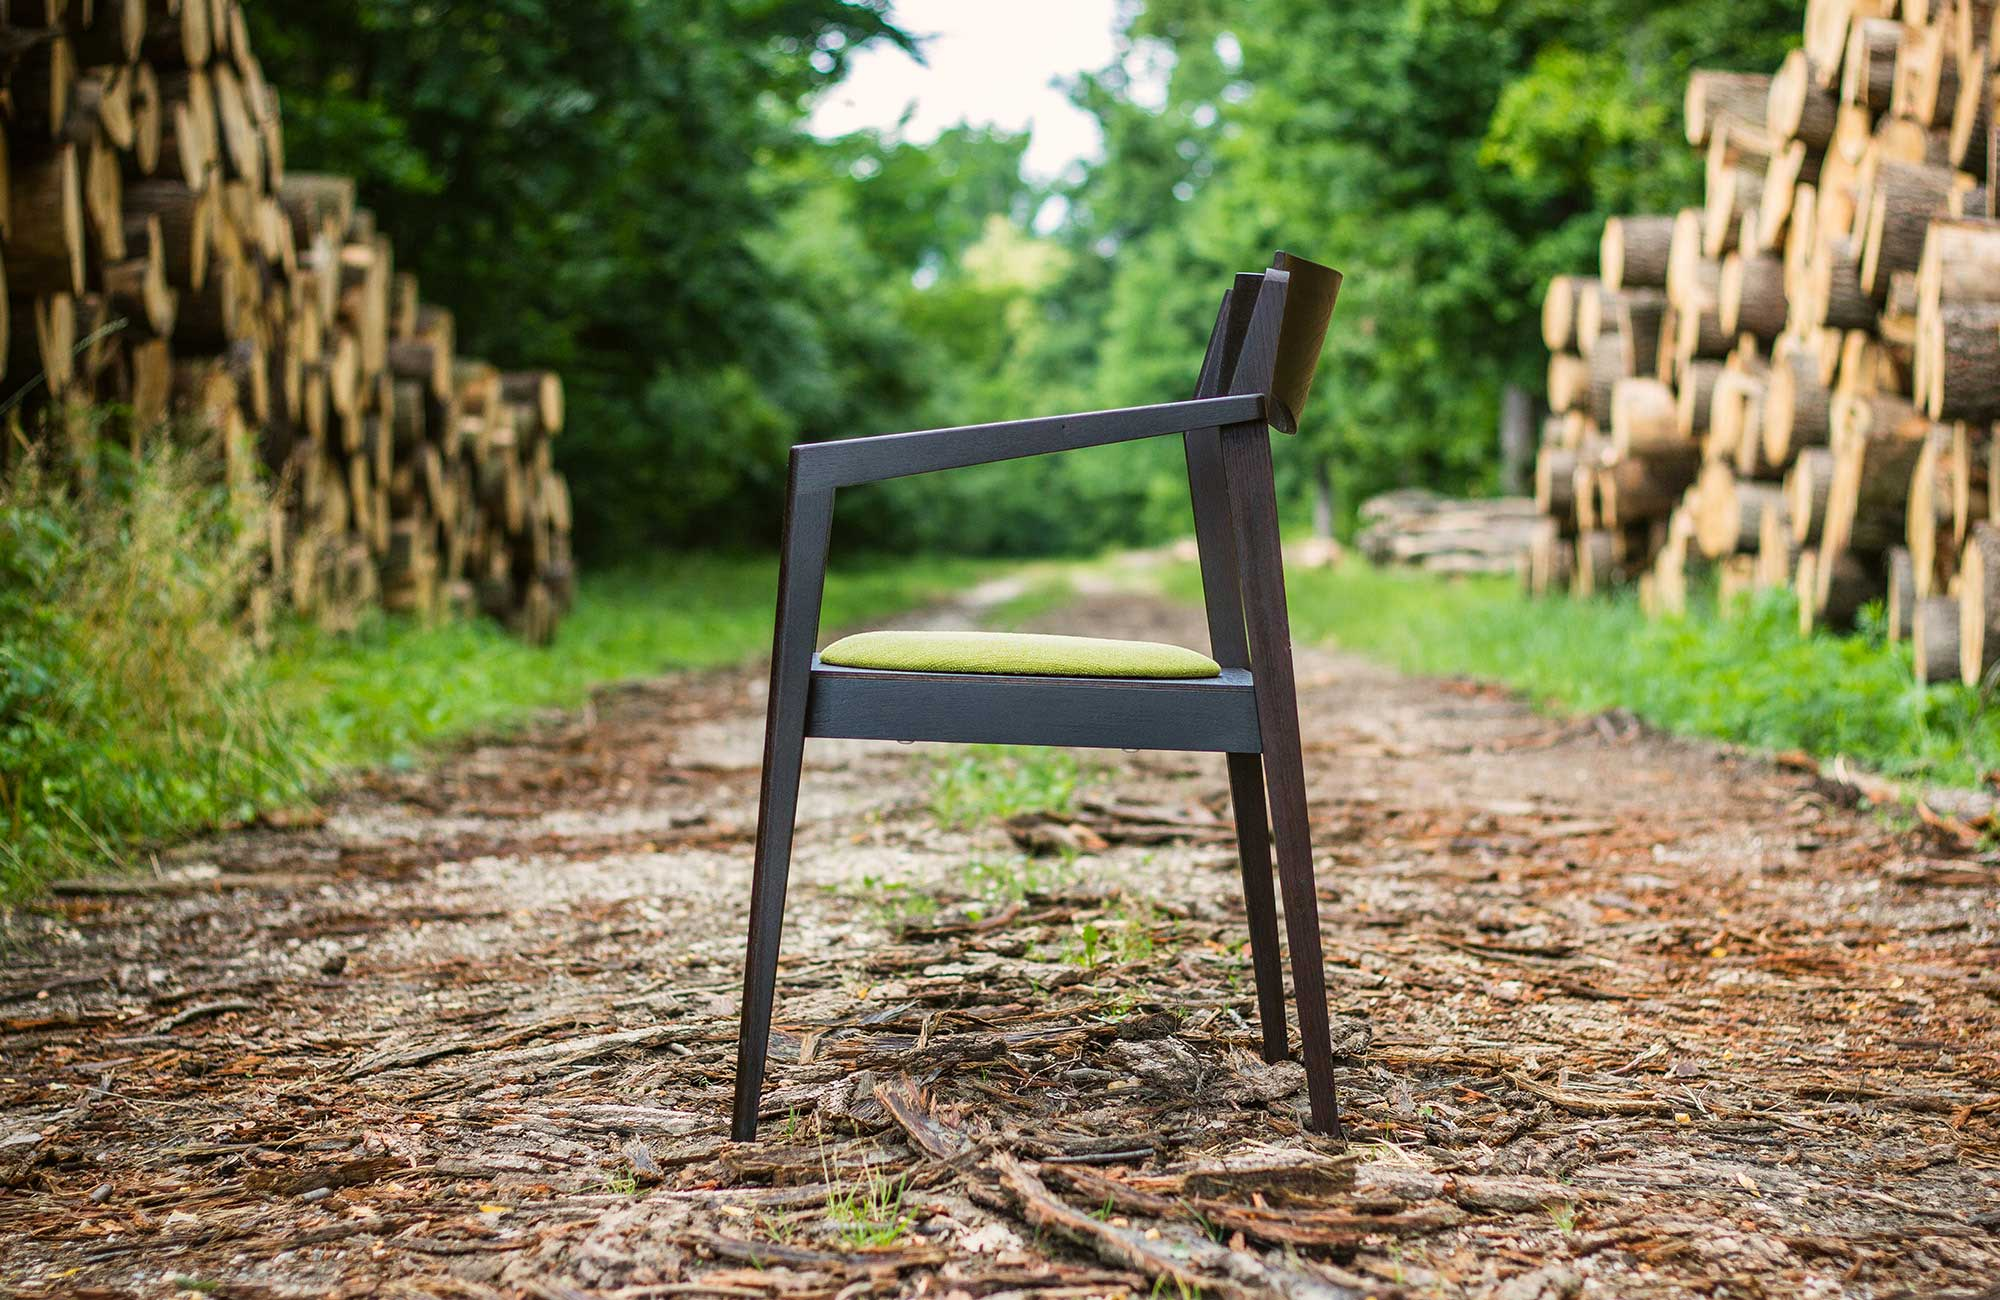 Public-chair-by-Mate-Horvath-02.jpg